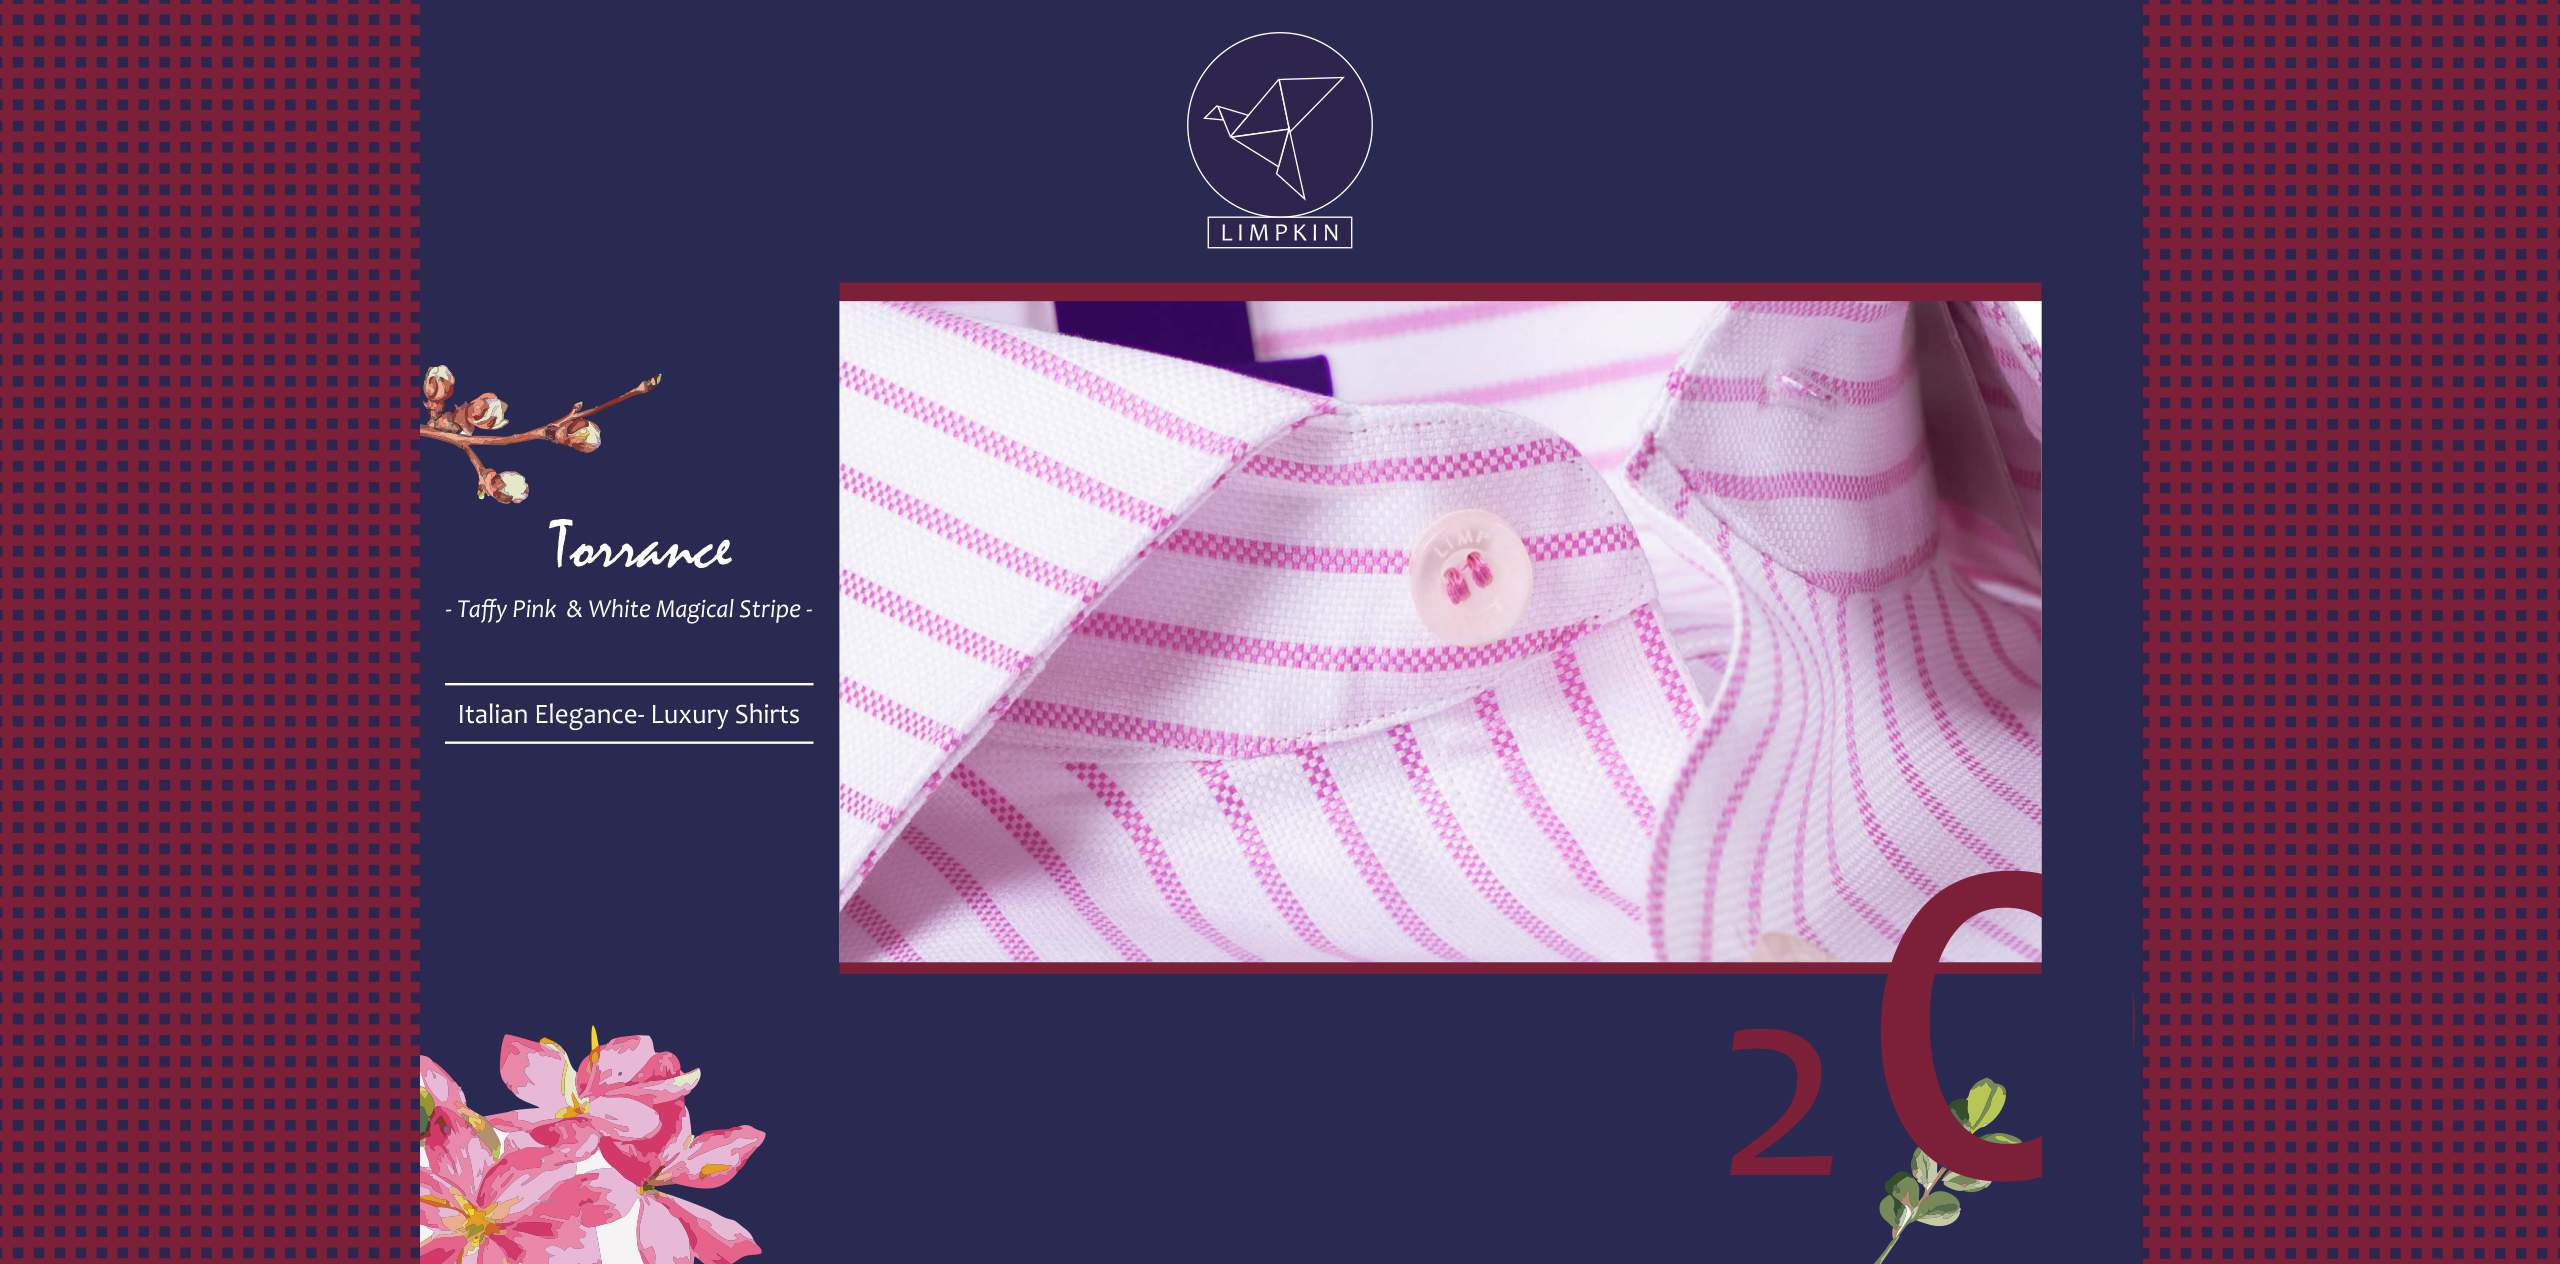 Torrance- Taffy Pink & White Magical Stripe- 2/120 Egyptian Giza Cotton- Delivery from 16th July - Banner